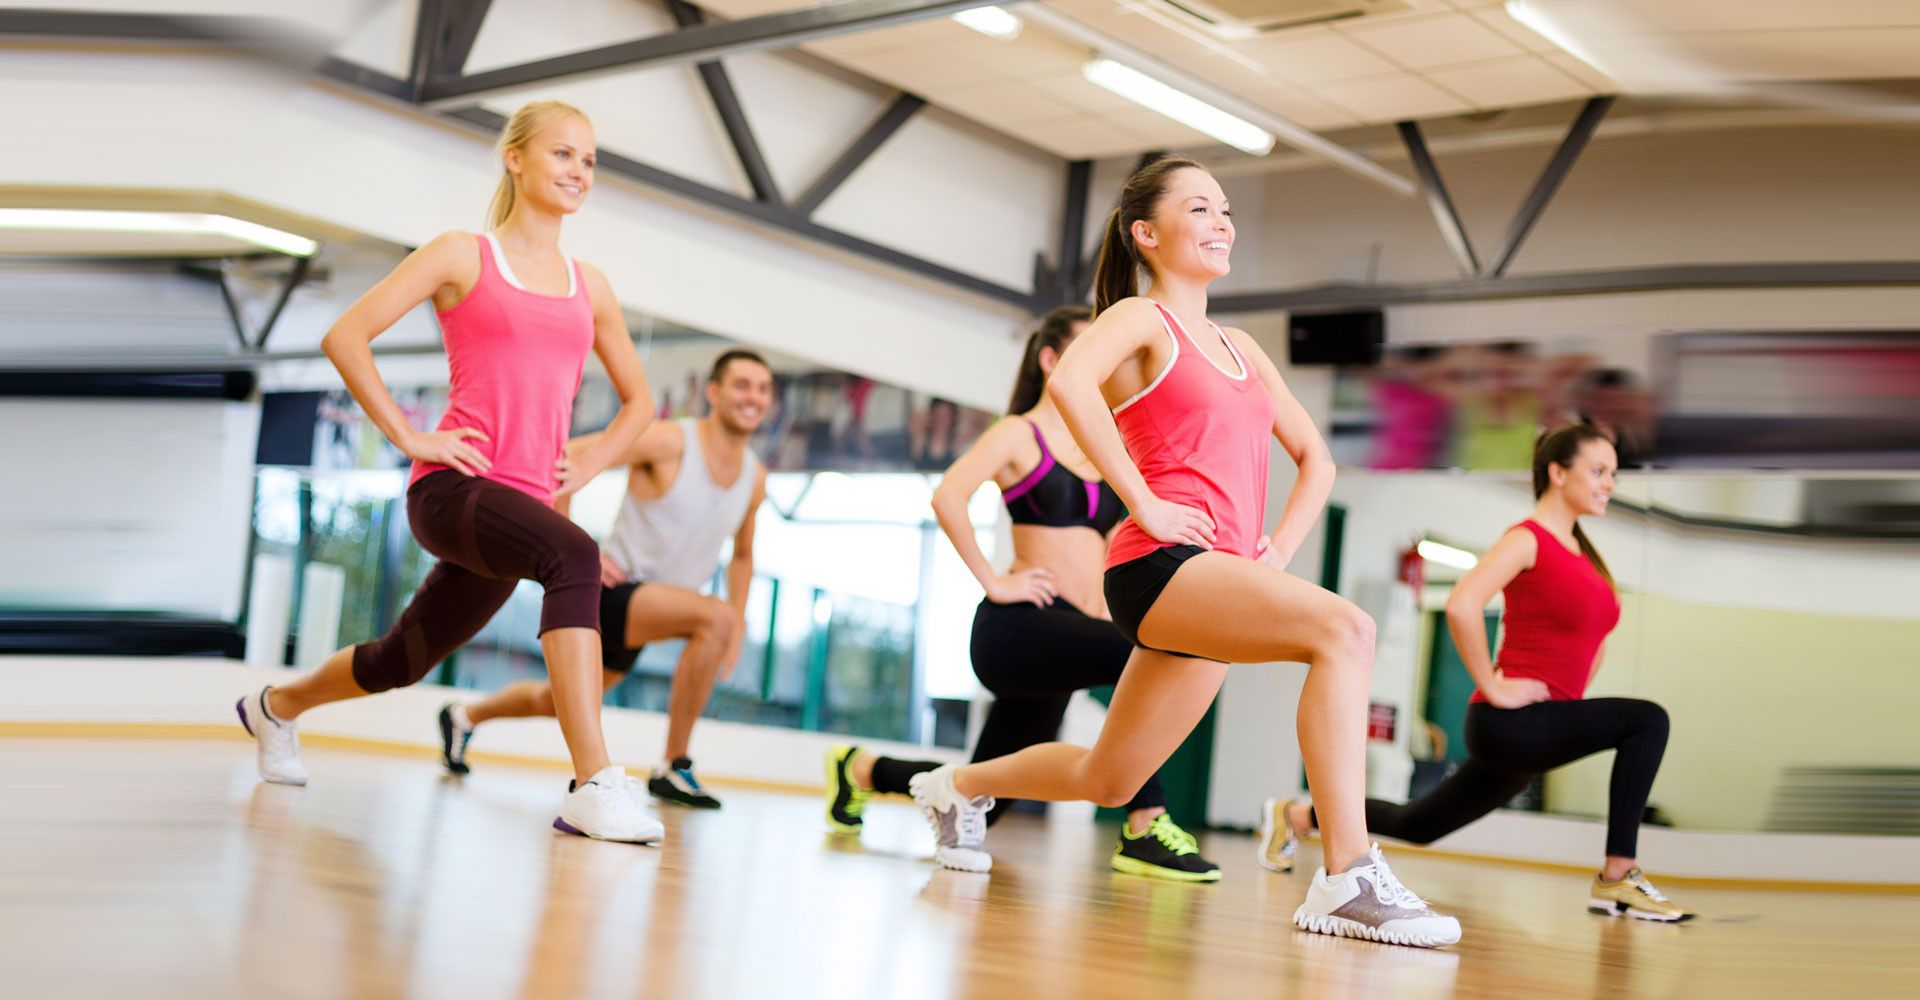 Aerobics Classes for women in Abu Dhabi